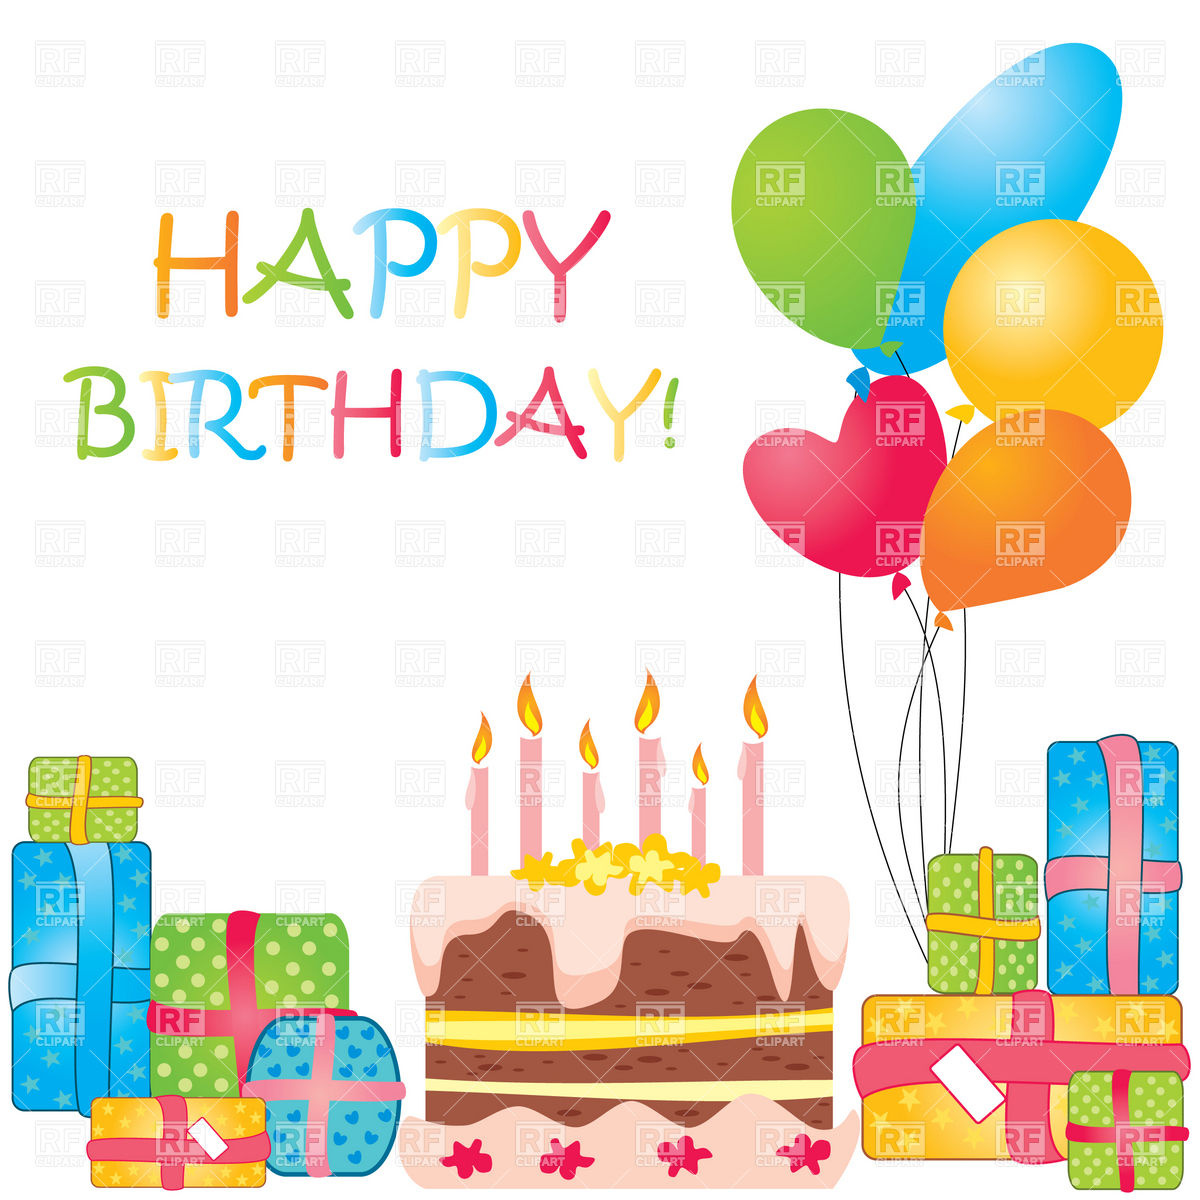 free birthday downloads cliparts ; birthday-cake-and-balloons-clipart-3